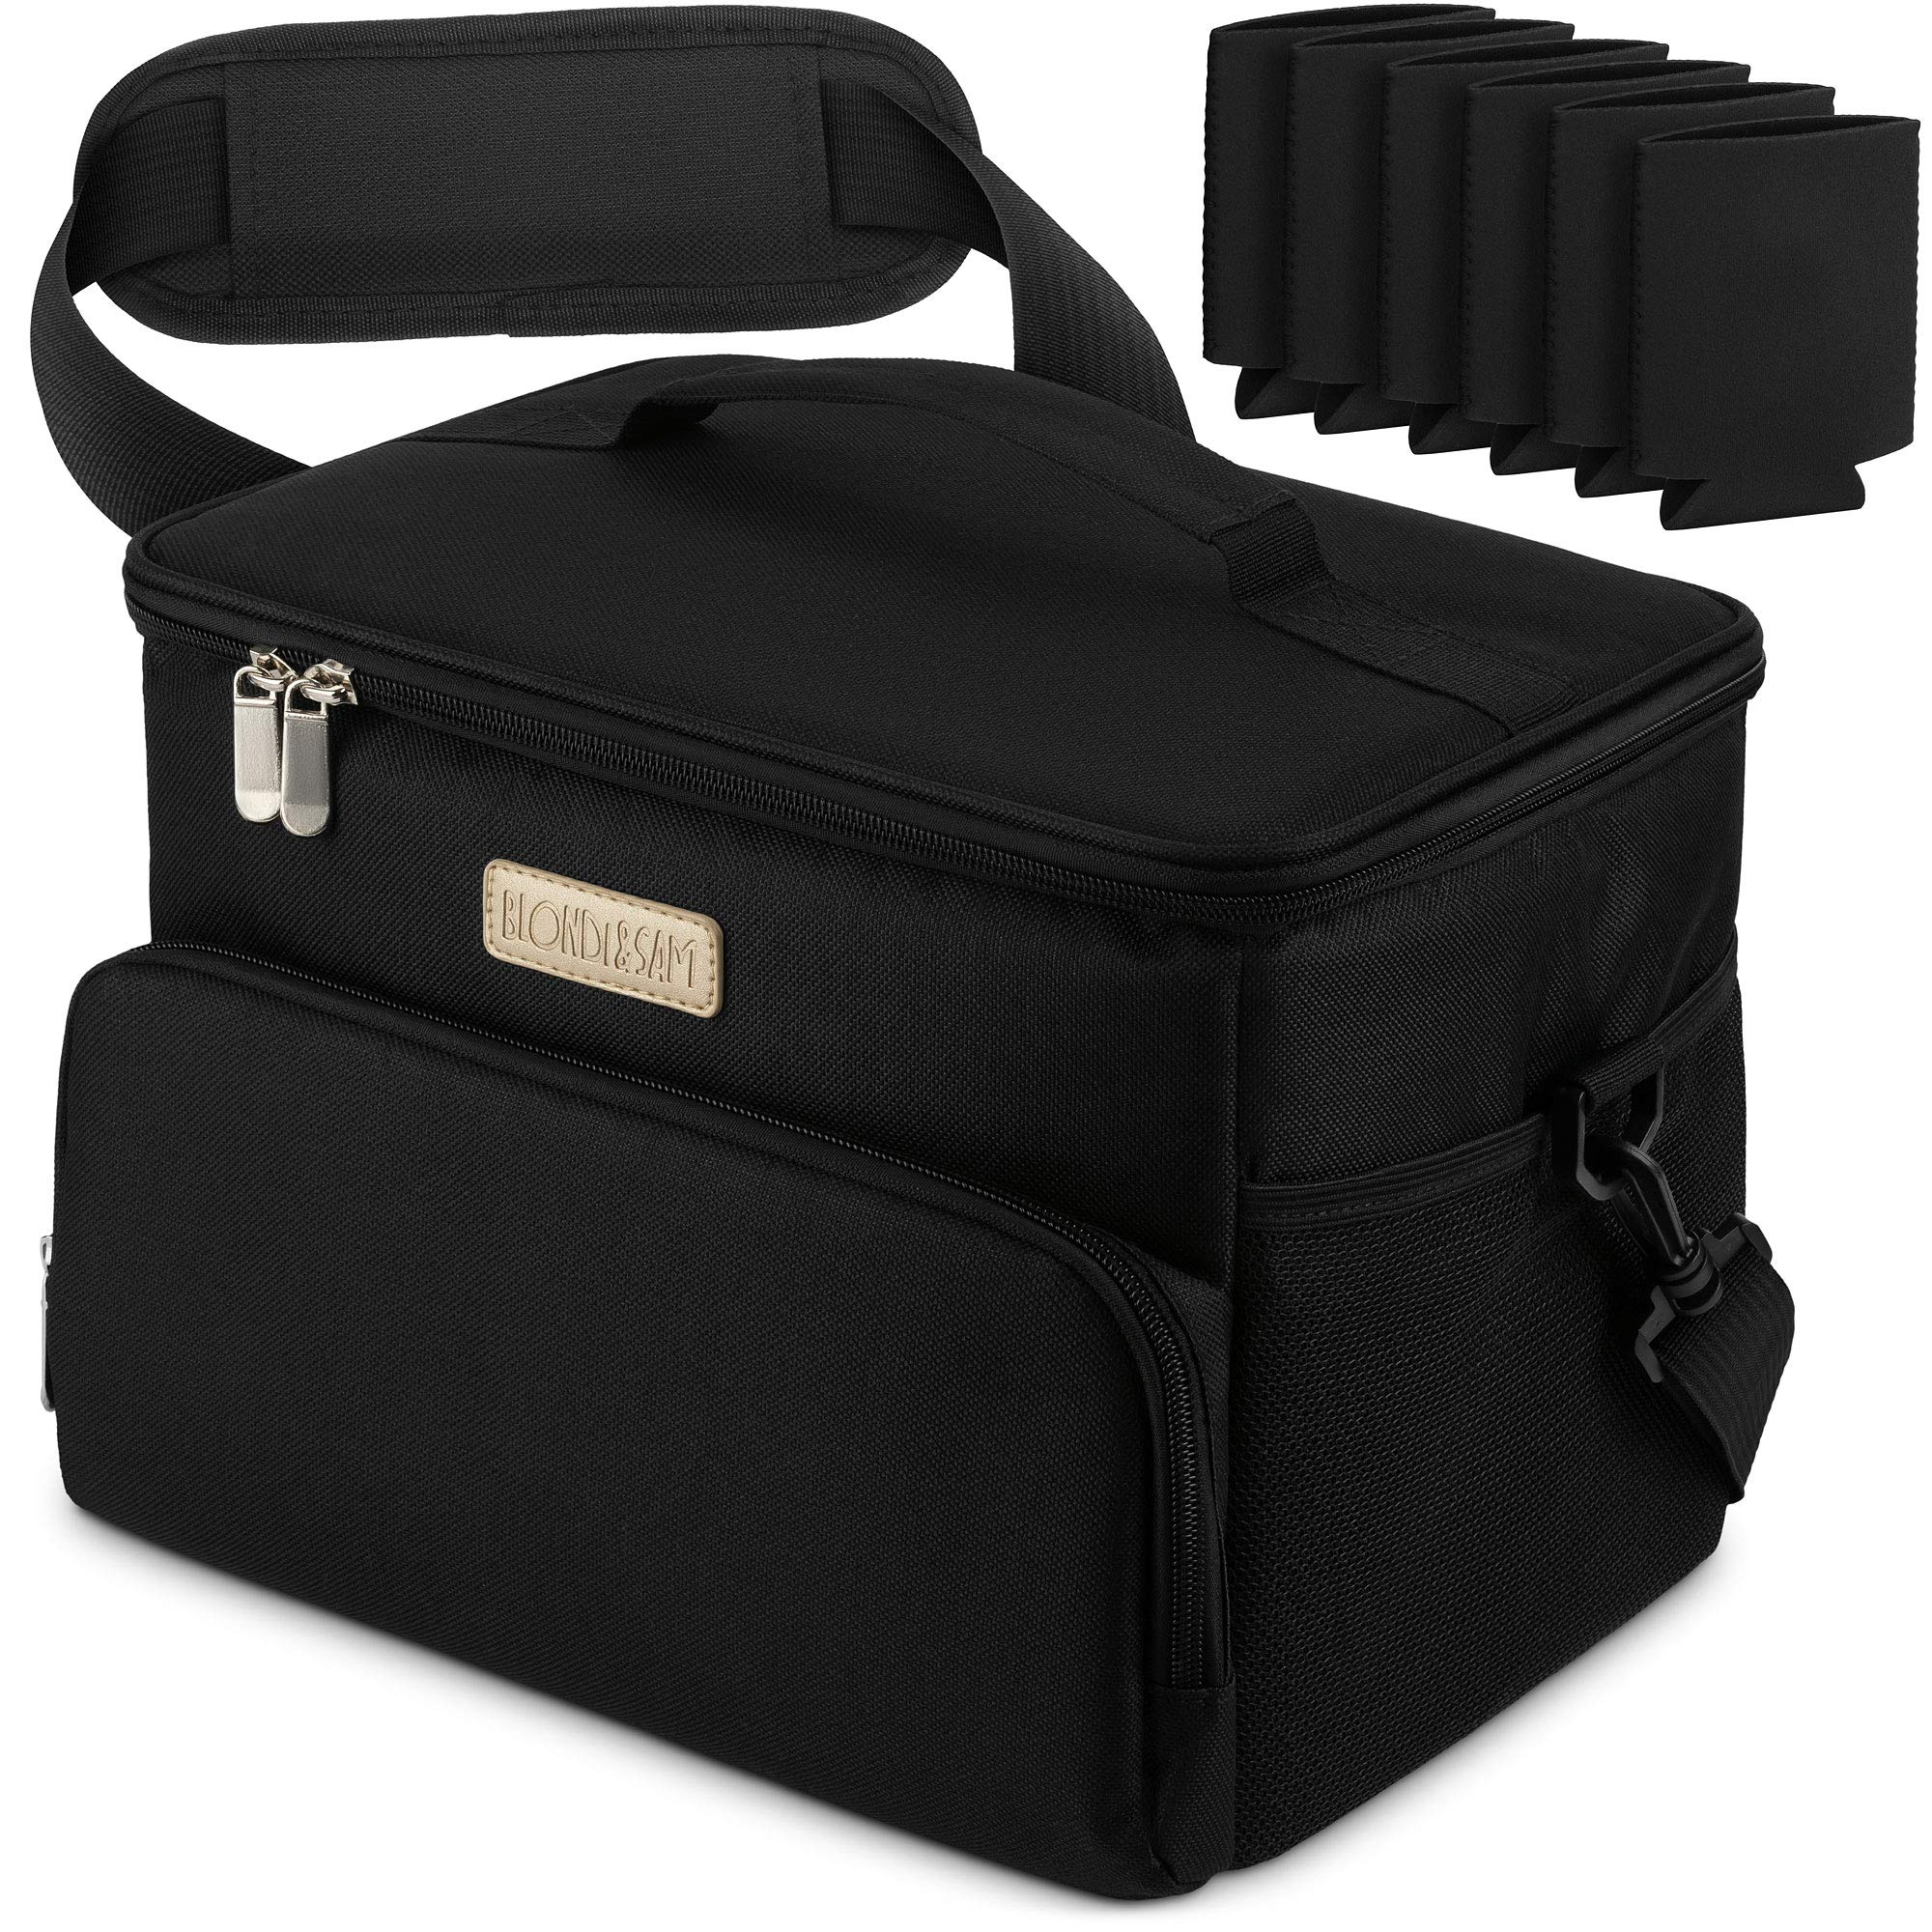 Cooler Bag With Zipper Closure